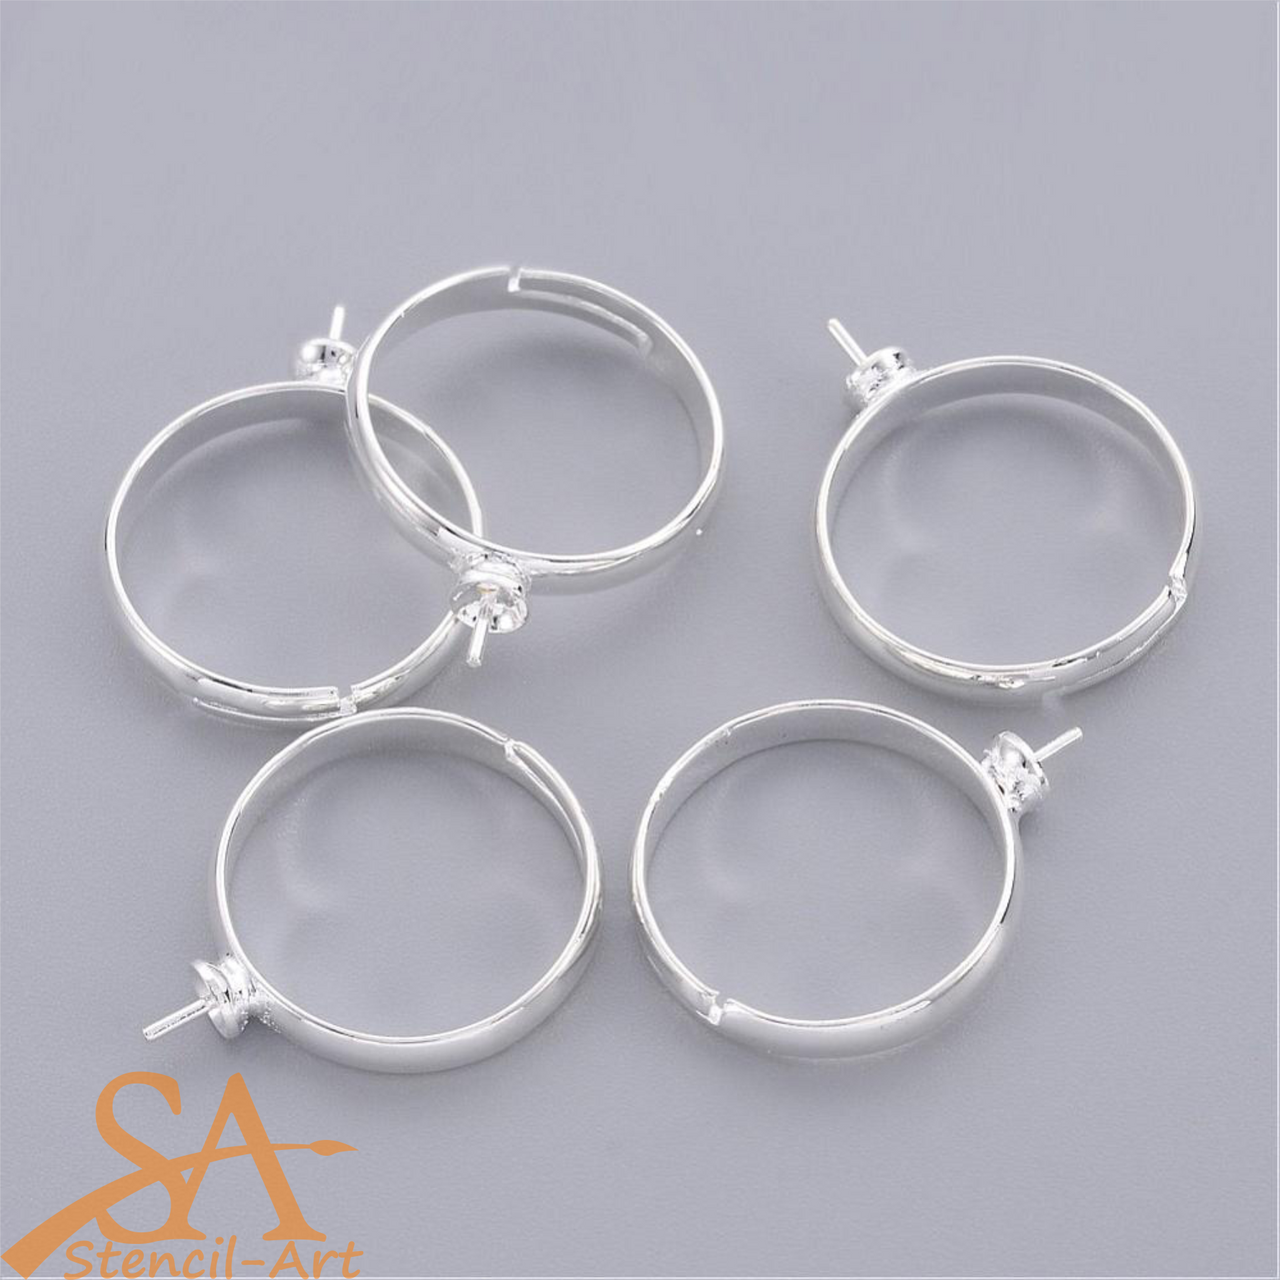 Adjustable Brass Ring Mounting & Setting Silver-Plated 19mm 10pcs